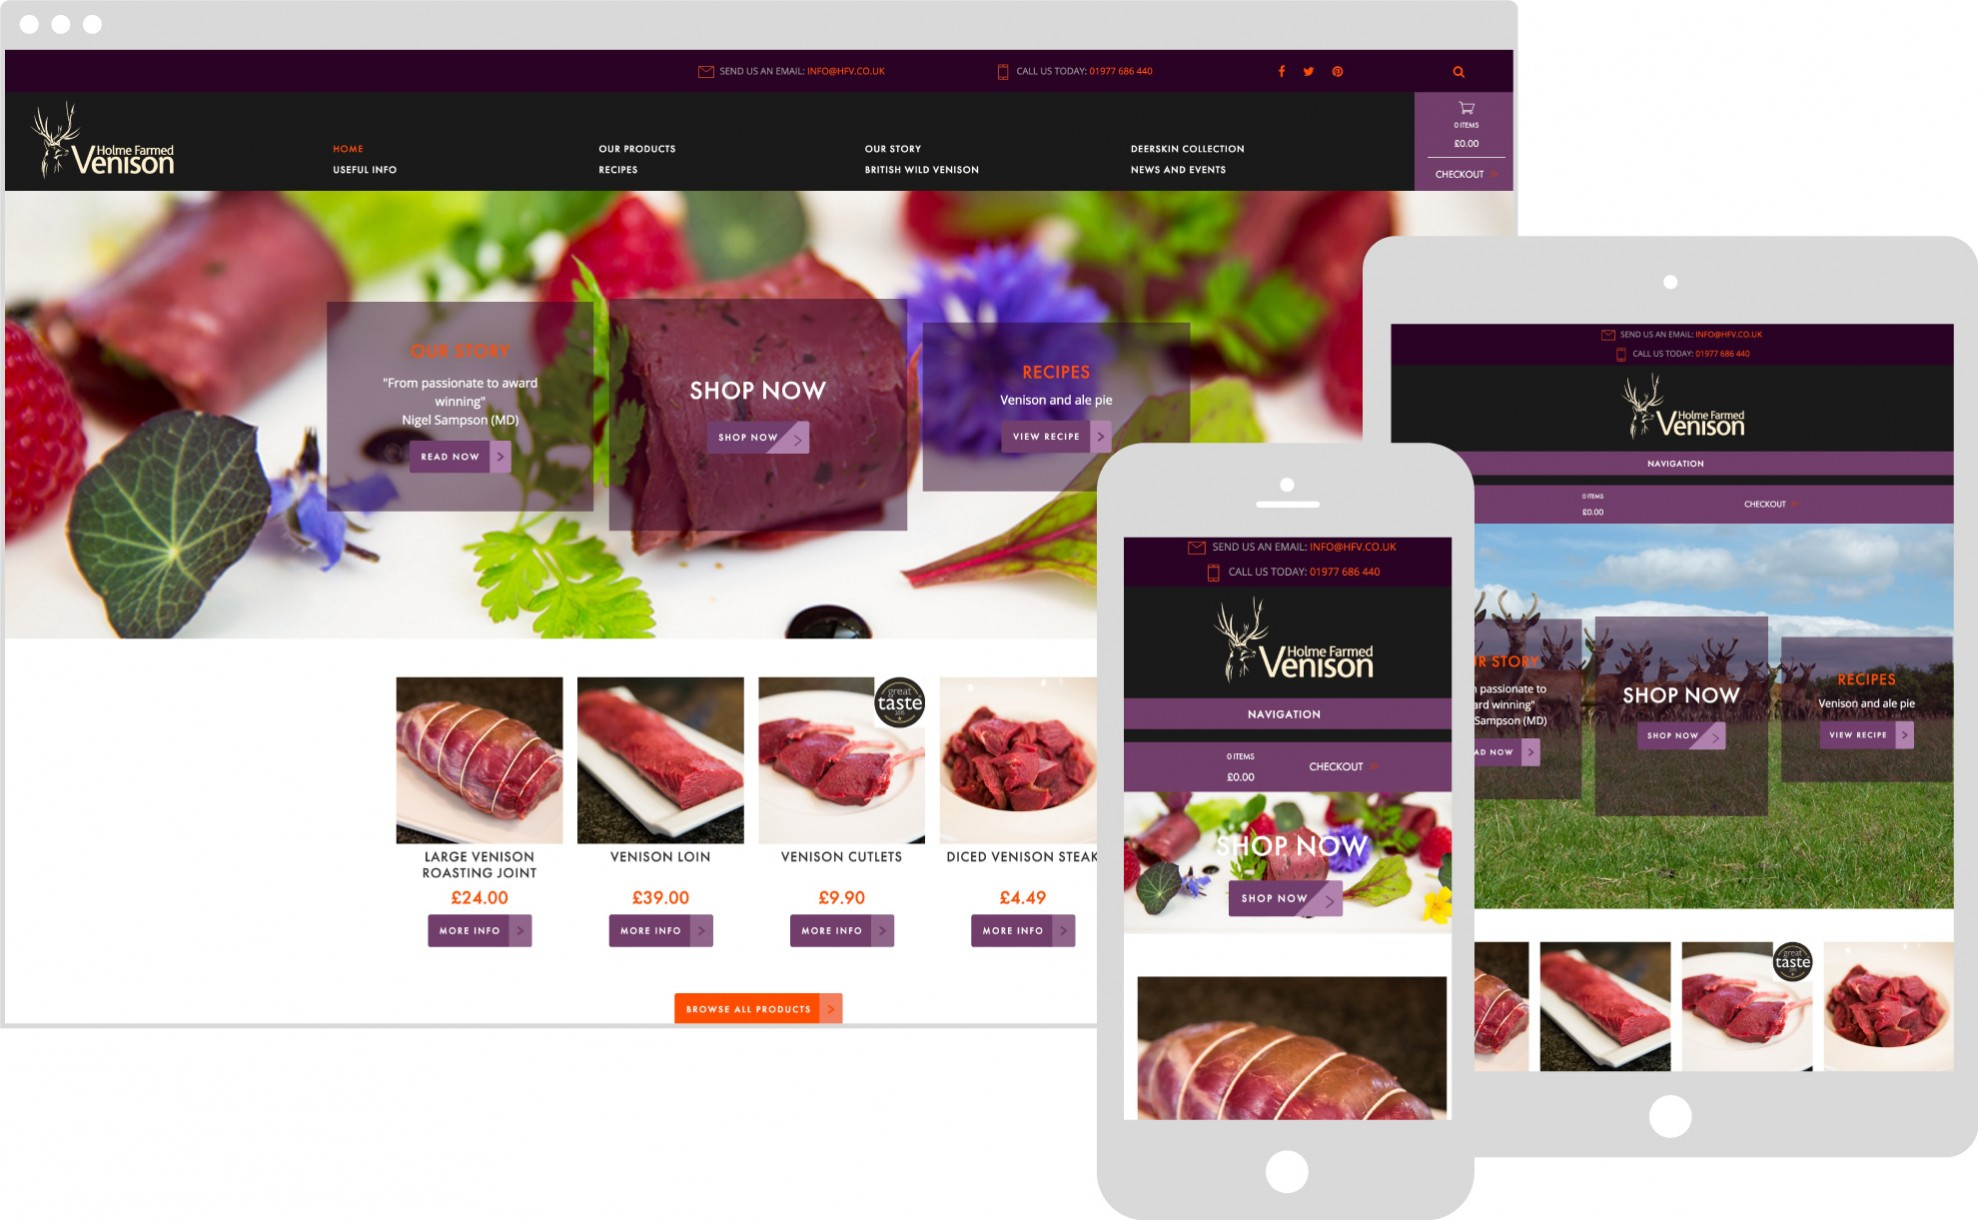 Holmed farmed venison displaying on multiple devices